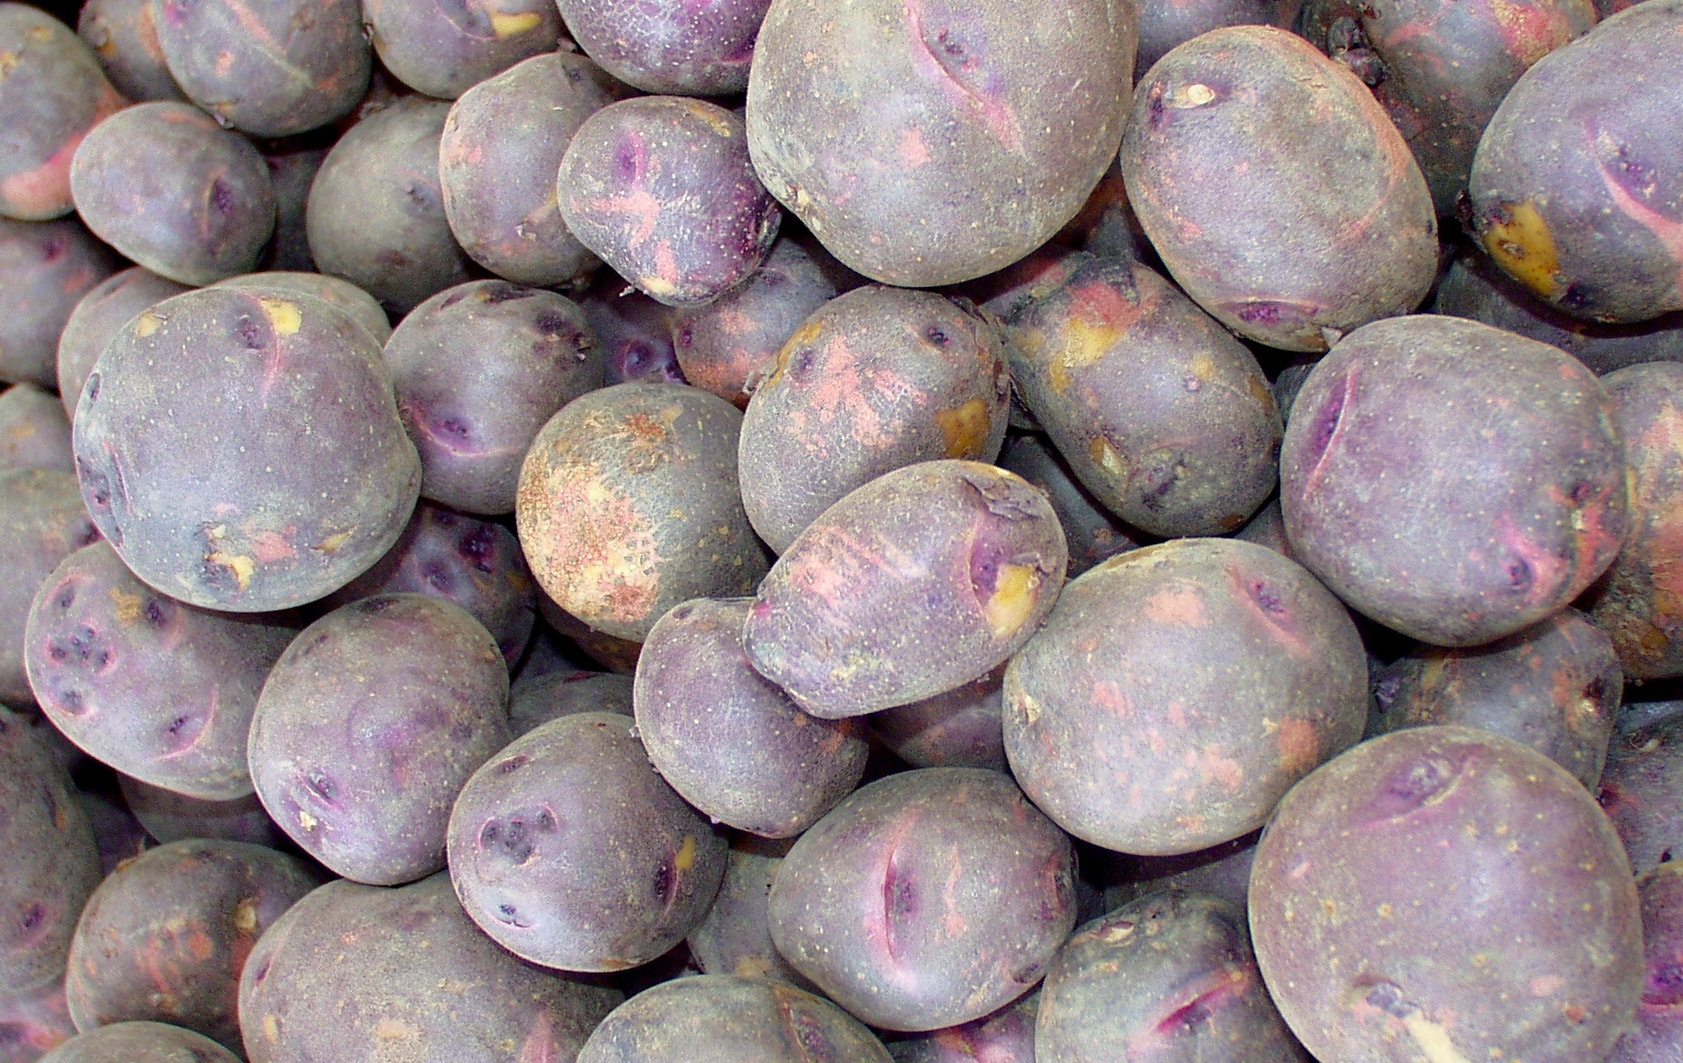 Viking purple potatoes from Olsen are perfect for Ballard. Photo copyright 2009 by Zachary D. Lyons.